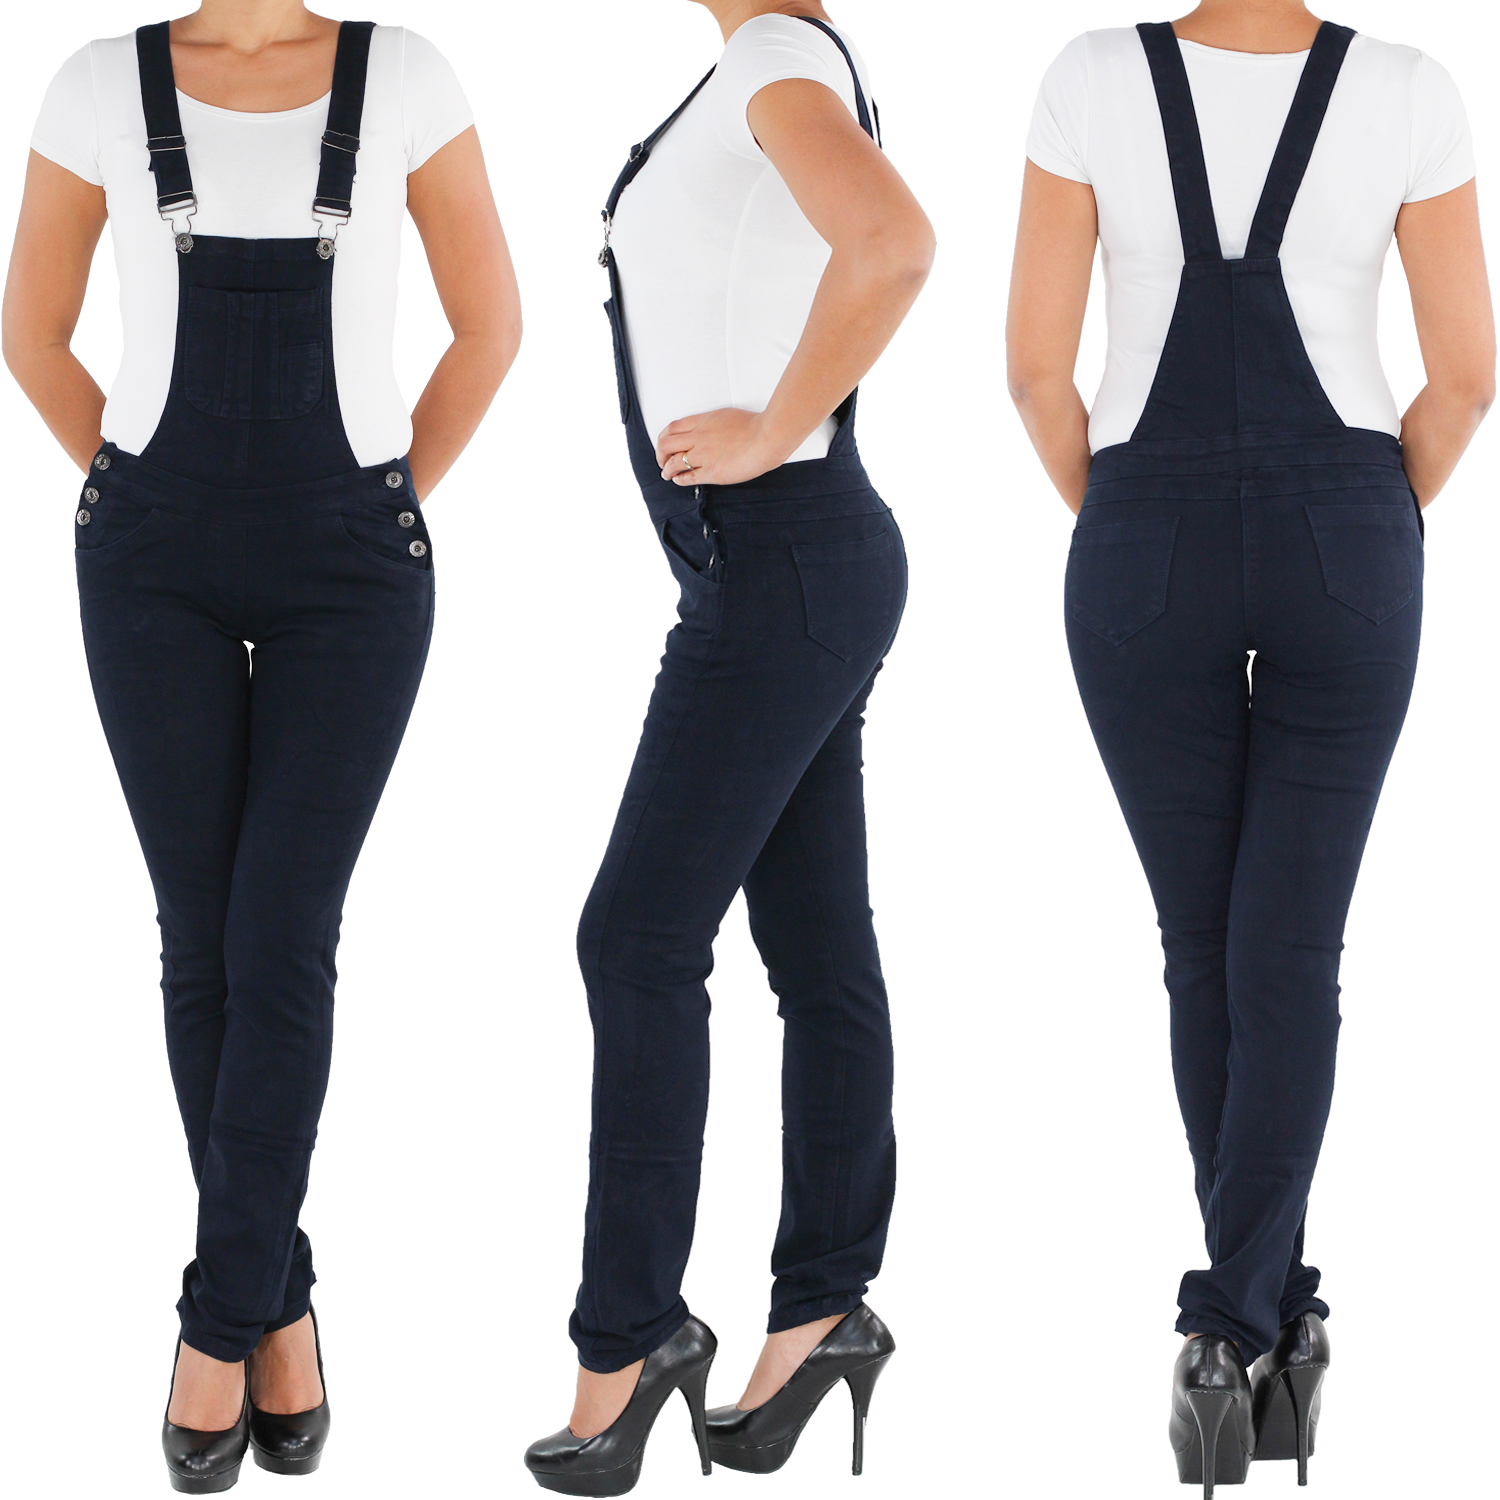 damen overall latzhose jeans hose h ftjeans r hrenjeans latzjeans stretch skinny ebay. Black Bedroom Furniture Sets. Home Design Ideas